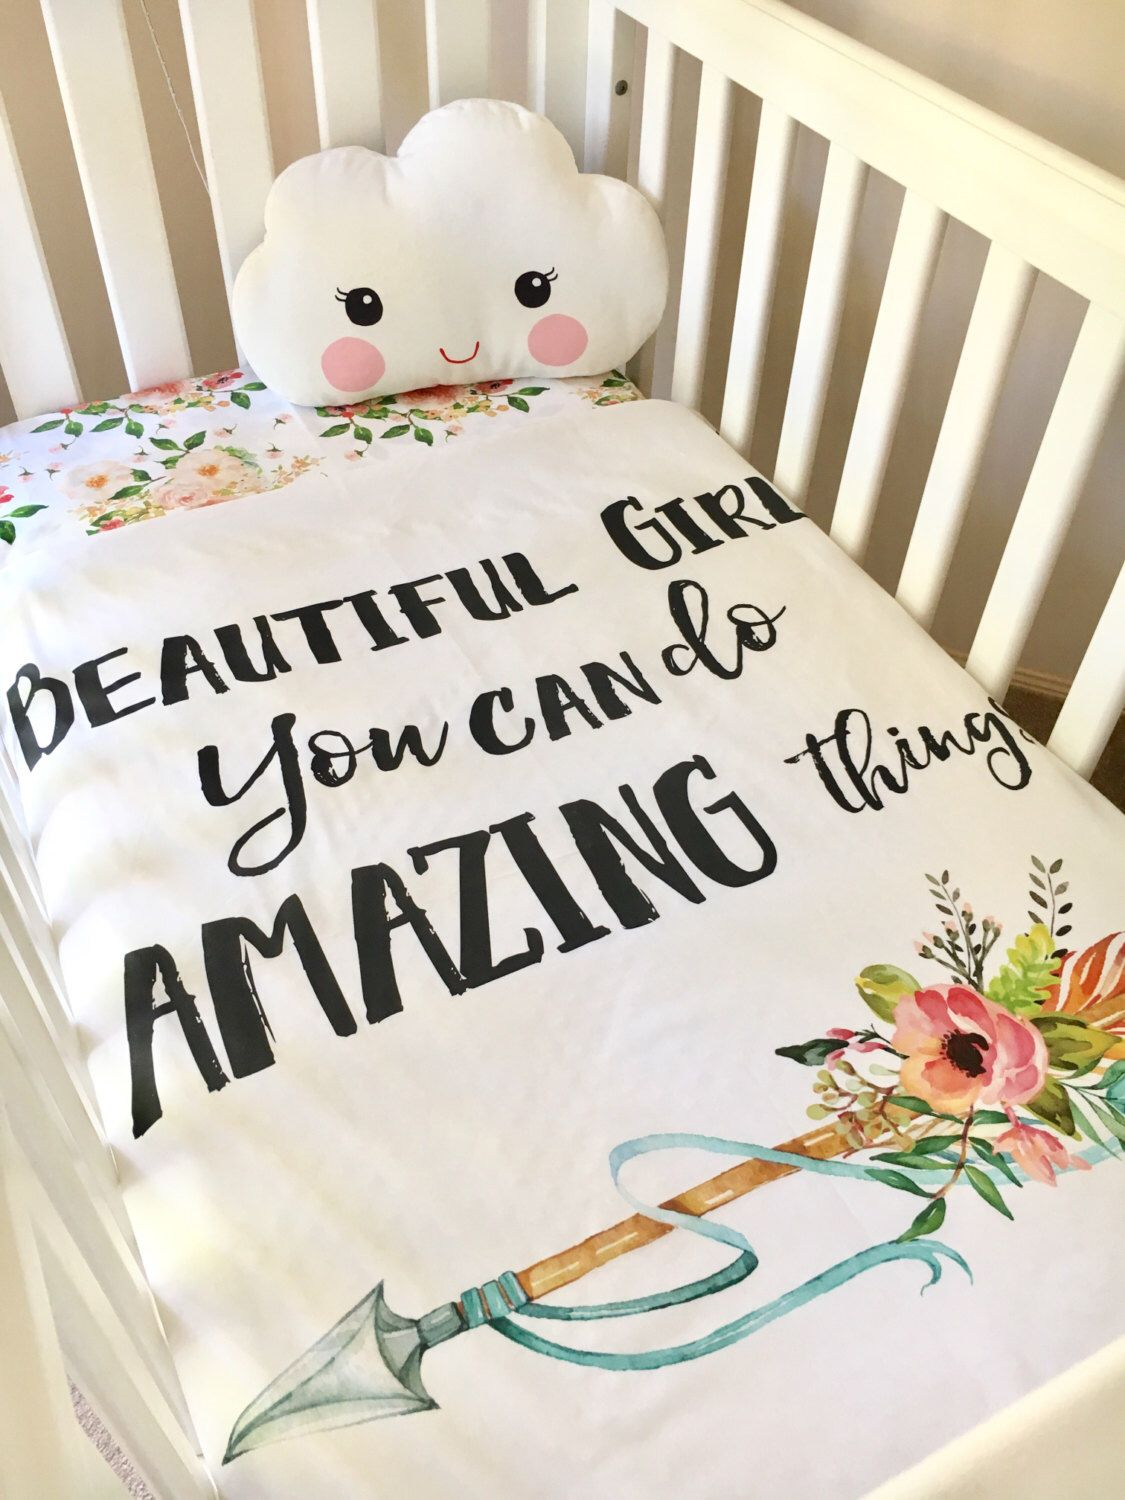 A Personal Favourite From My Etsy Shop Https Www Etsy Com Au Listing 502143373 Baby Cot Crib Quilt Blanket Beau Girl Nursery Crib Baby Girls Nursery Baby Cot